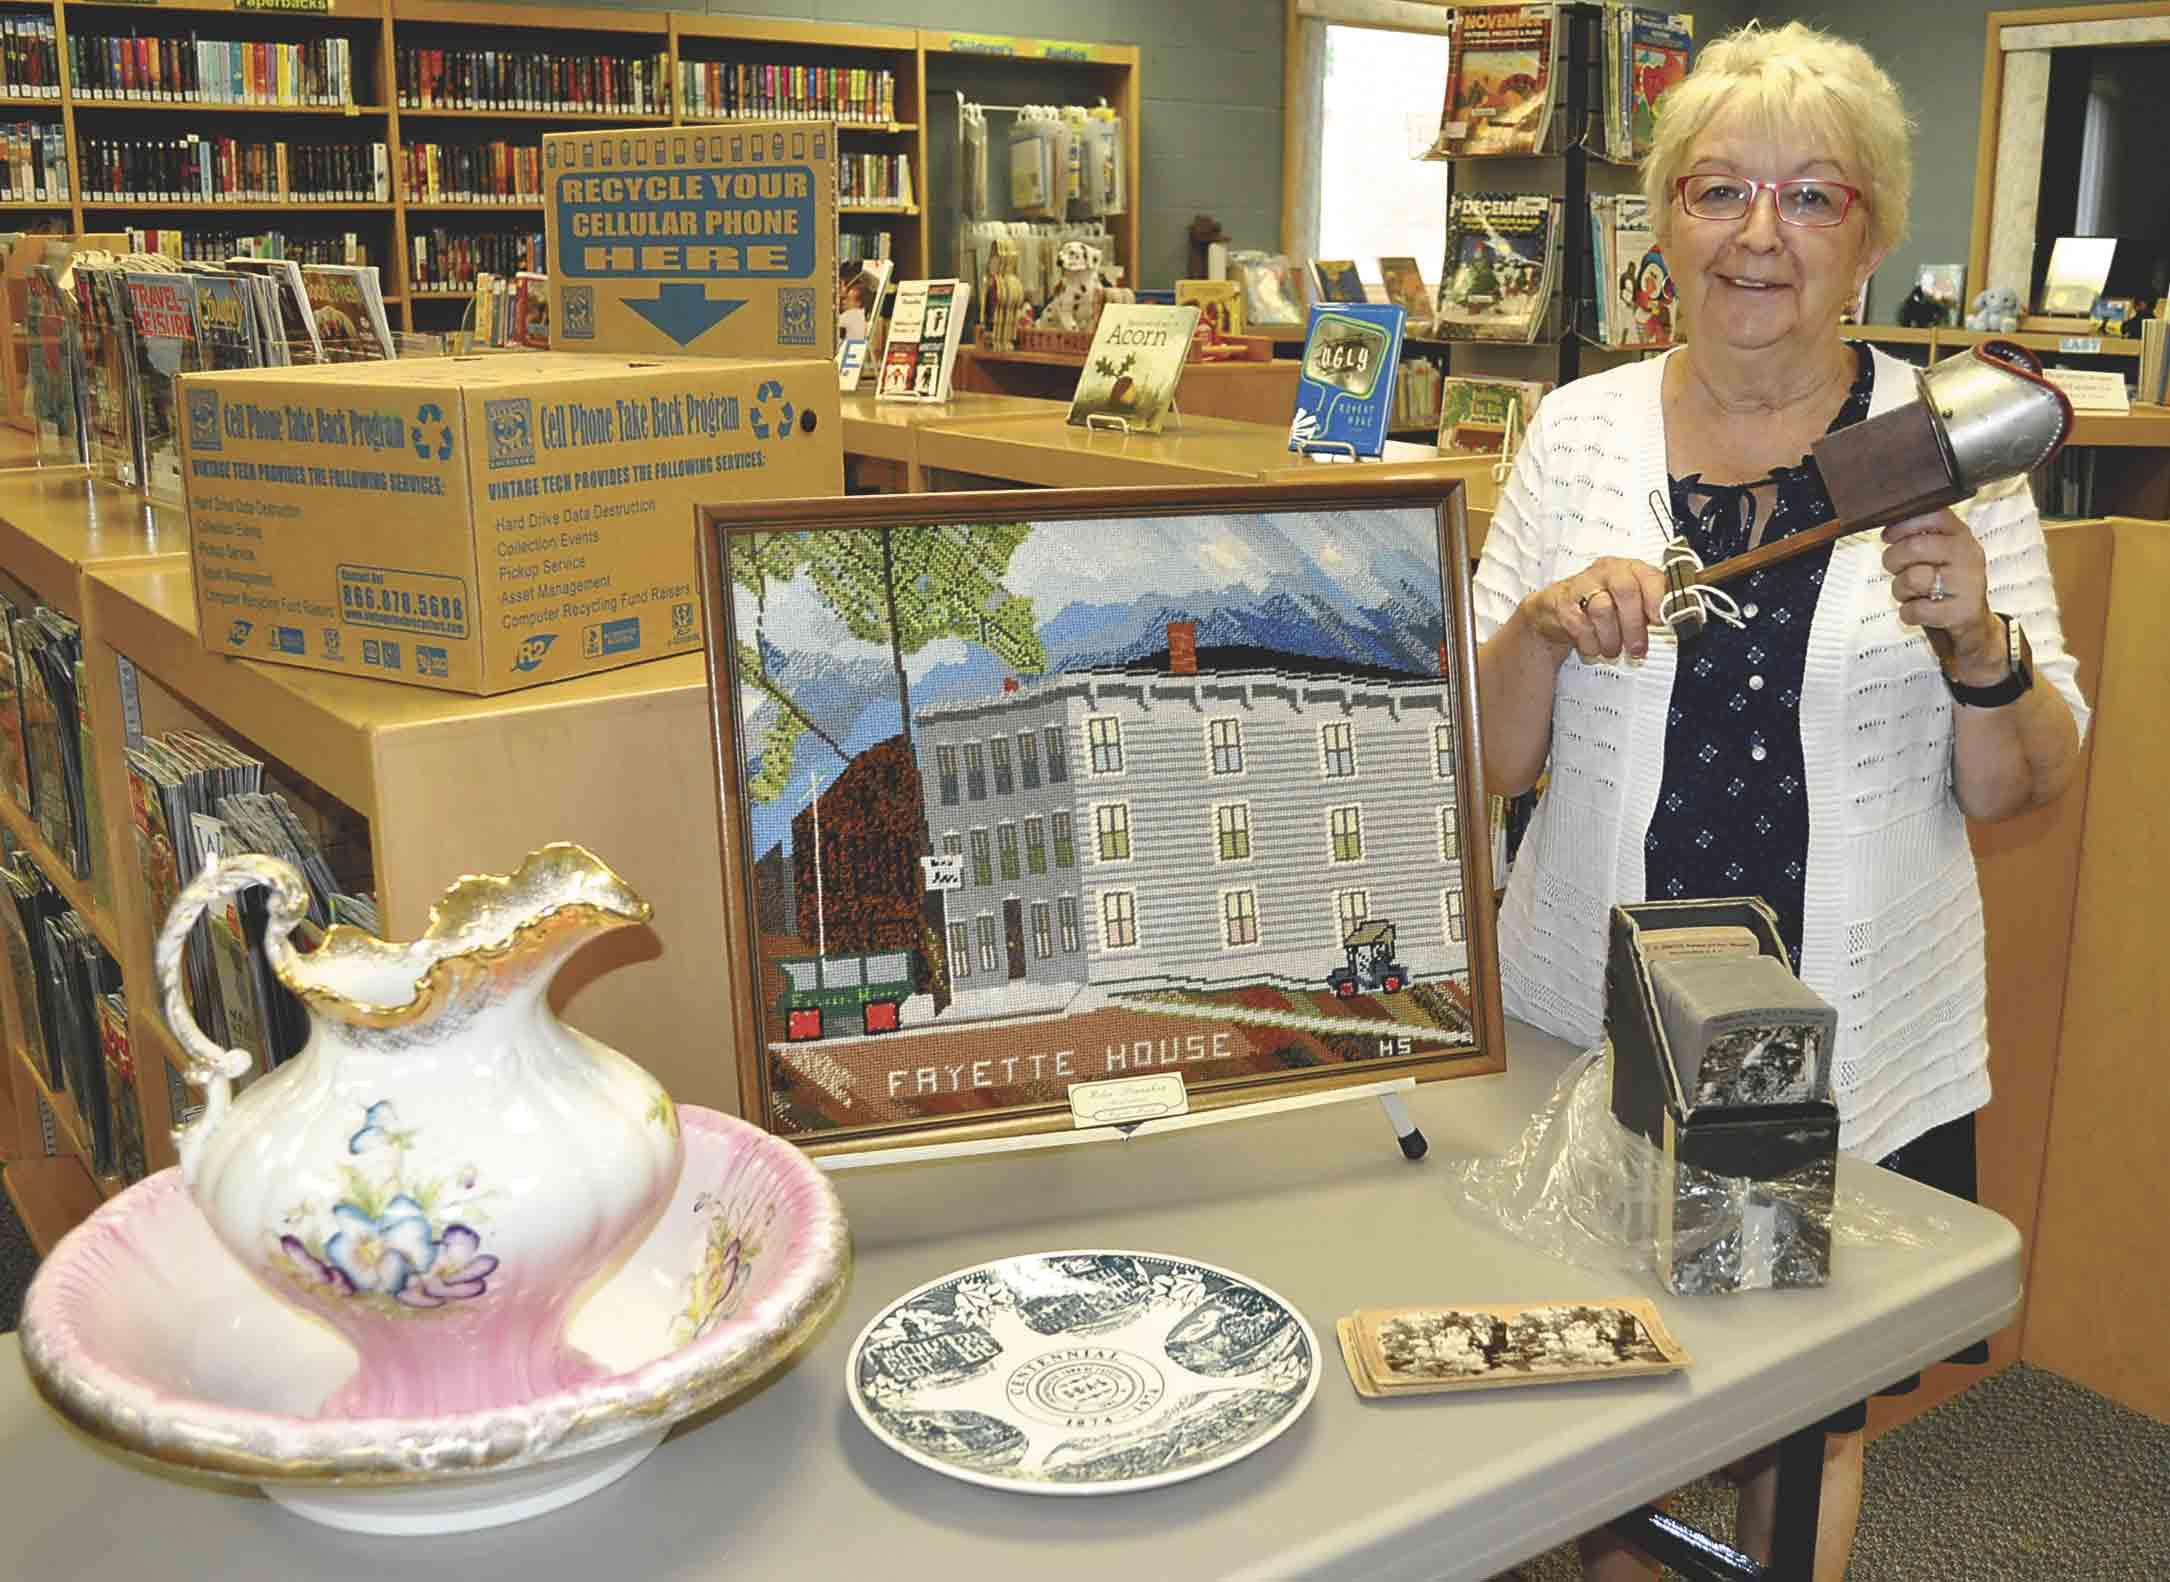 Fayette librarian Linda Adams is holding a stereoscope that was among the items donated to the city by Myrna Humiston Schultz of Fallon, Nev. Myrna is the granddaughter of E.N. Humiston, proprietor of the Fayette House, a hotel in the city that was a landmark in the late 1800s and...